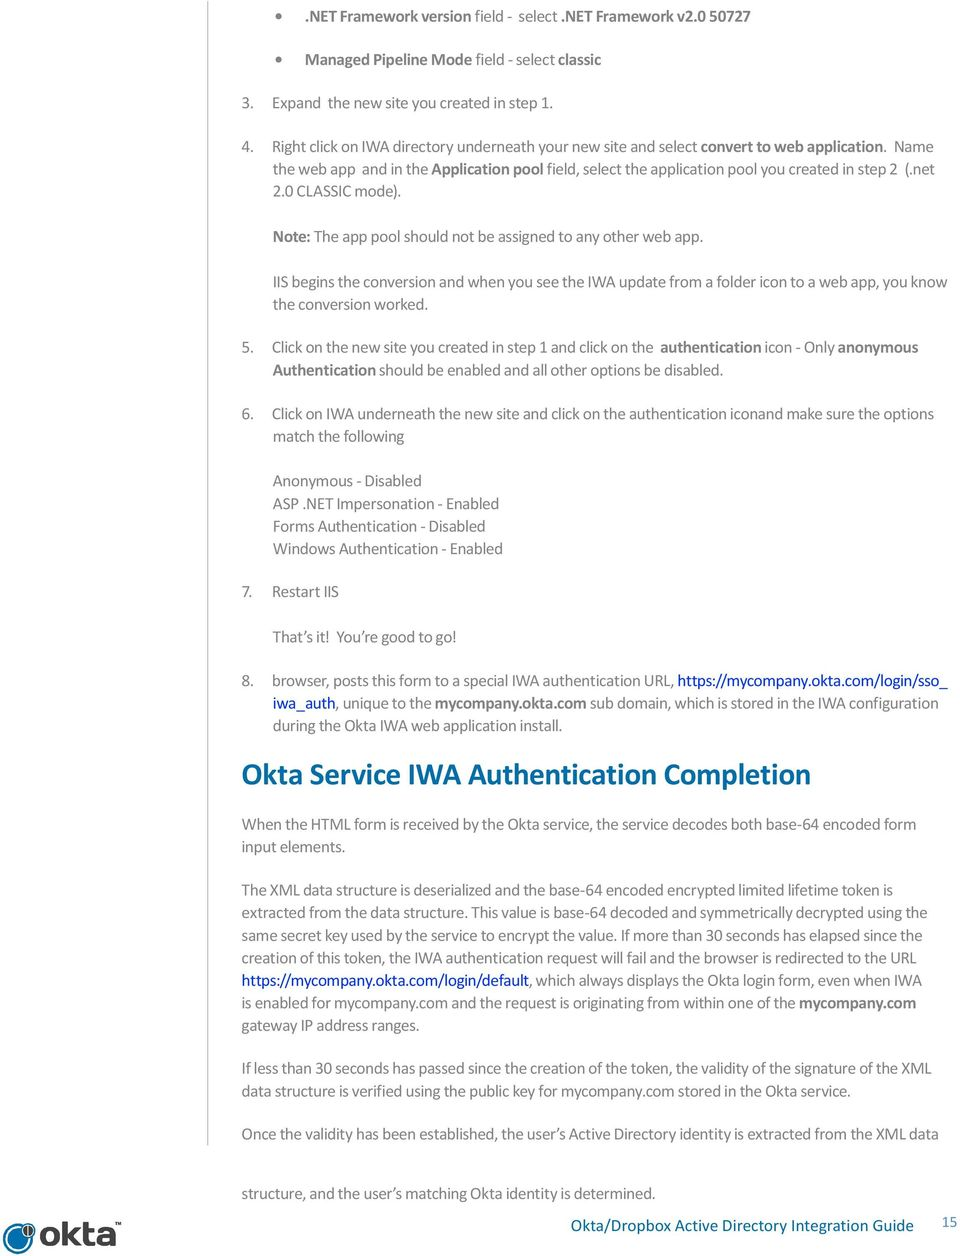 Okta/Dropbox Active Directory Integration Guide - PDF